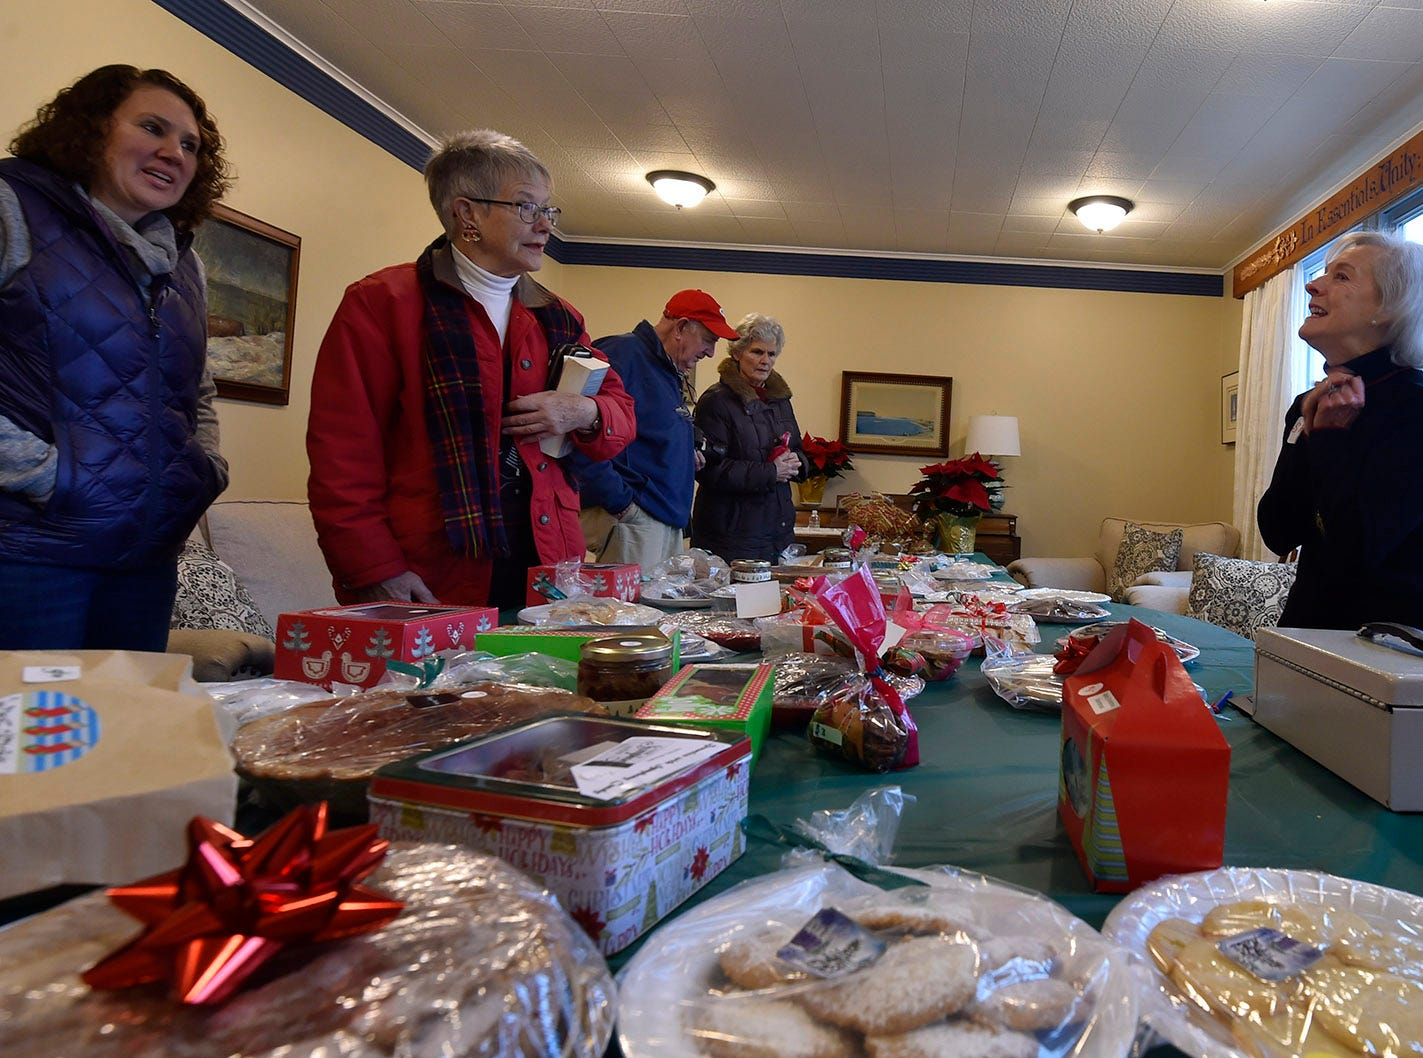 Many holiday sweets at the  annual fund-raising bake sale at Ephraim Moravian Church during Christmas in the Village in Ephraim on Saturday, Dec. 1, 2018. Tina M. Gohr/USA TODAY NETWORK-Wisconsin